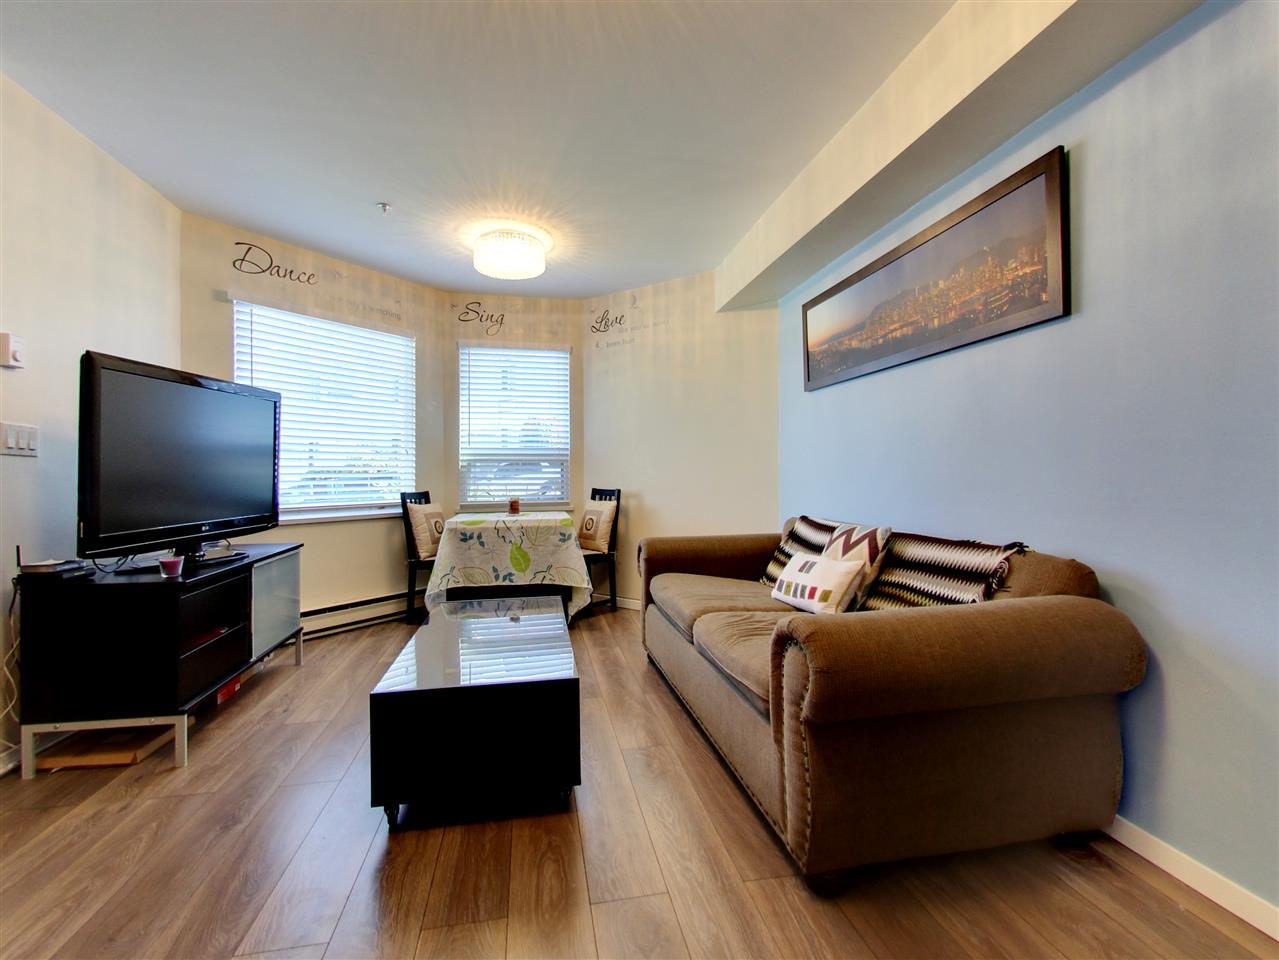 Photo 4: 2309 ALDER STREET in Vancouver: Fairview VW Condo for sale (Vancouver West)  : MLS(r) # R2115607